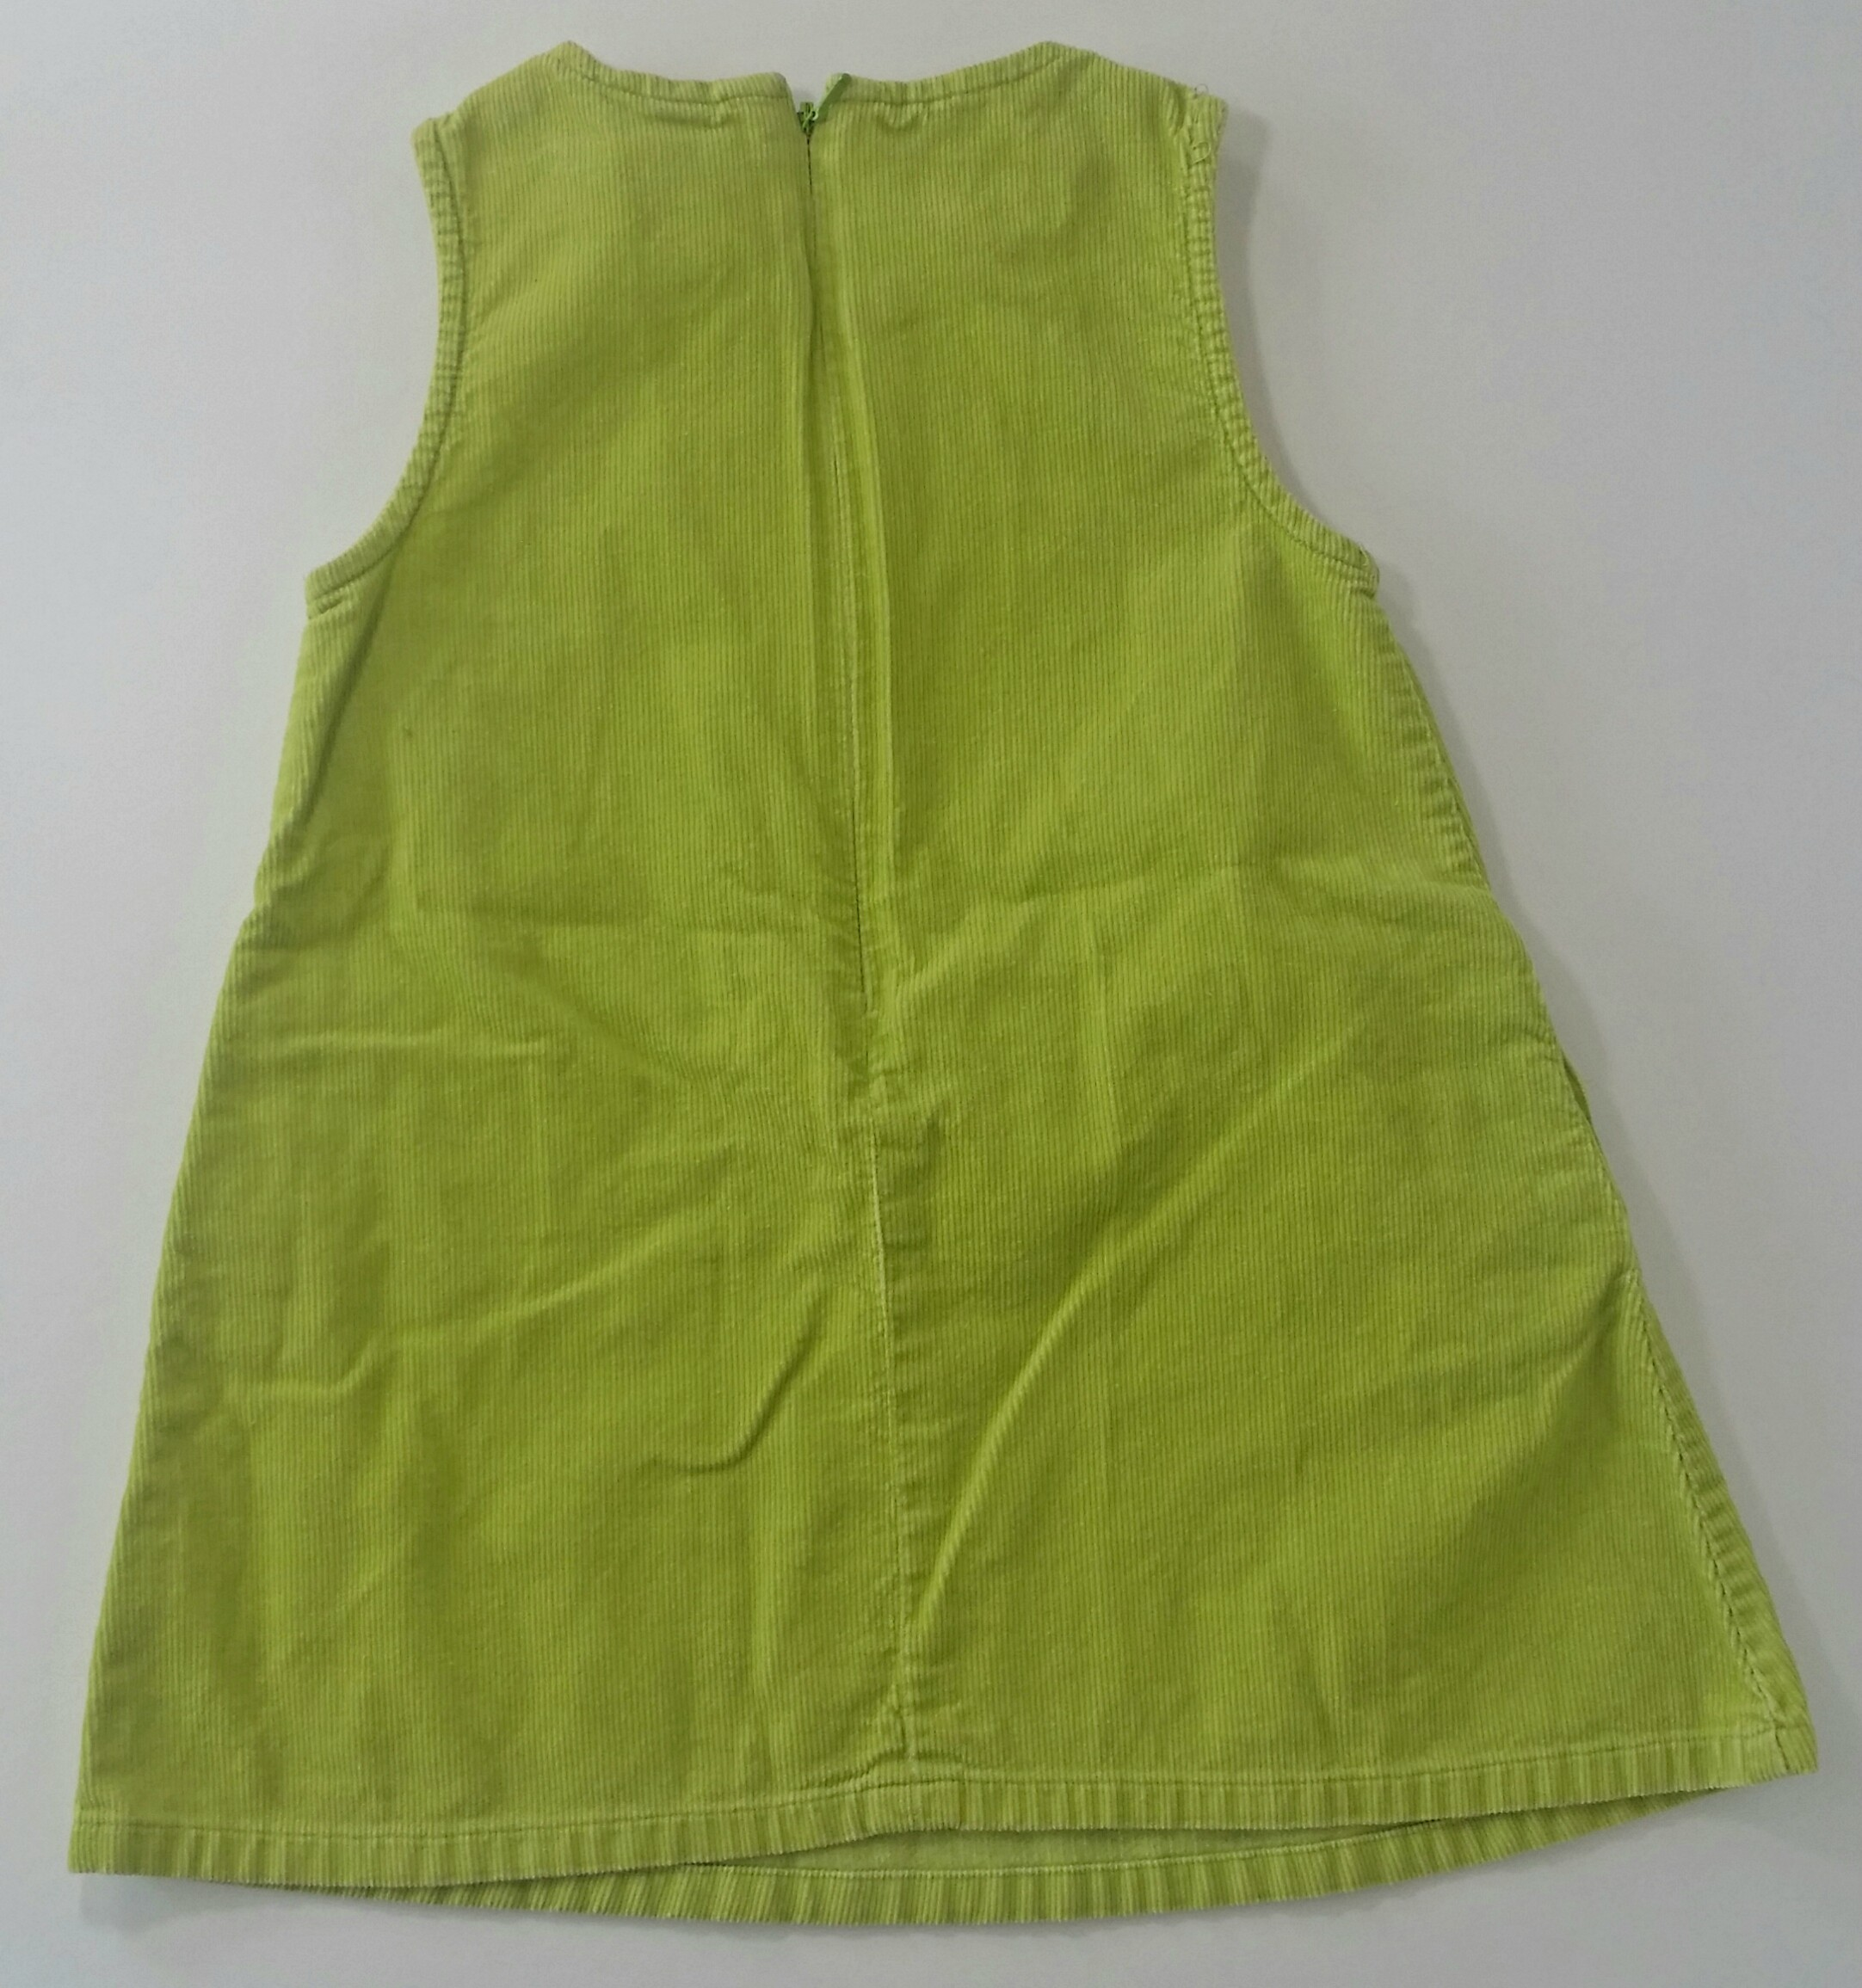 Gymboree-2-YEARS-Corduroy-Dress_2147220C.jpg